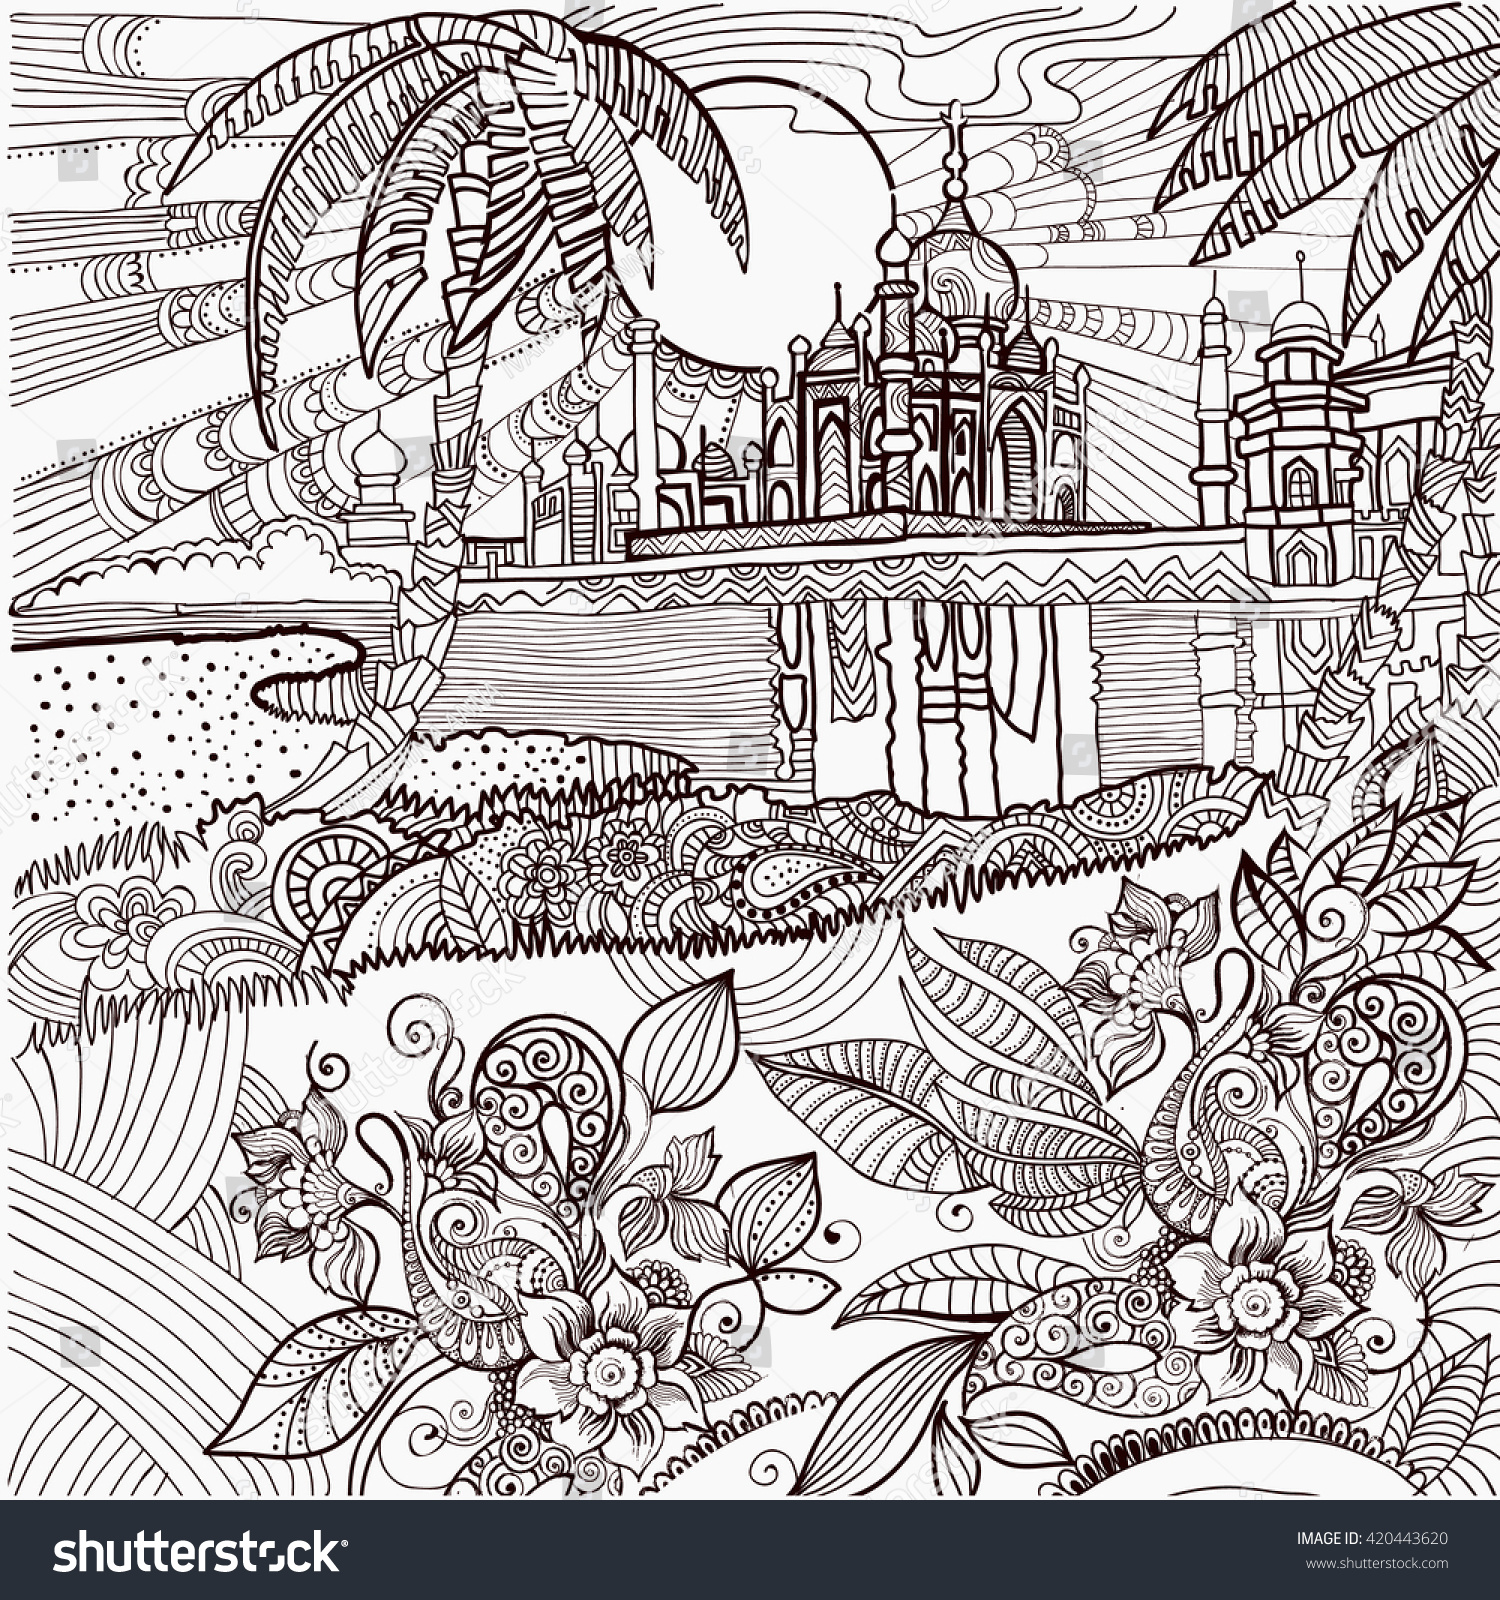 India coloring pages for adults - Coloring Pages India